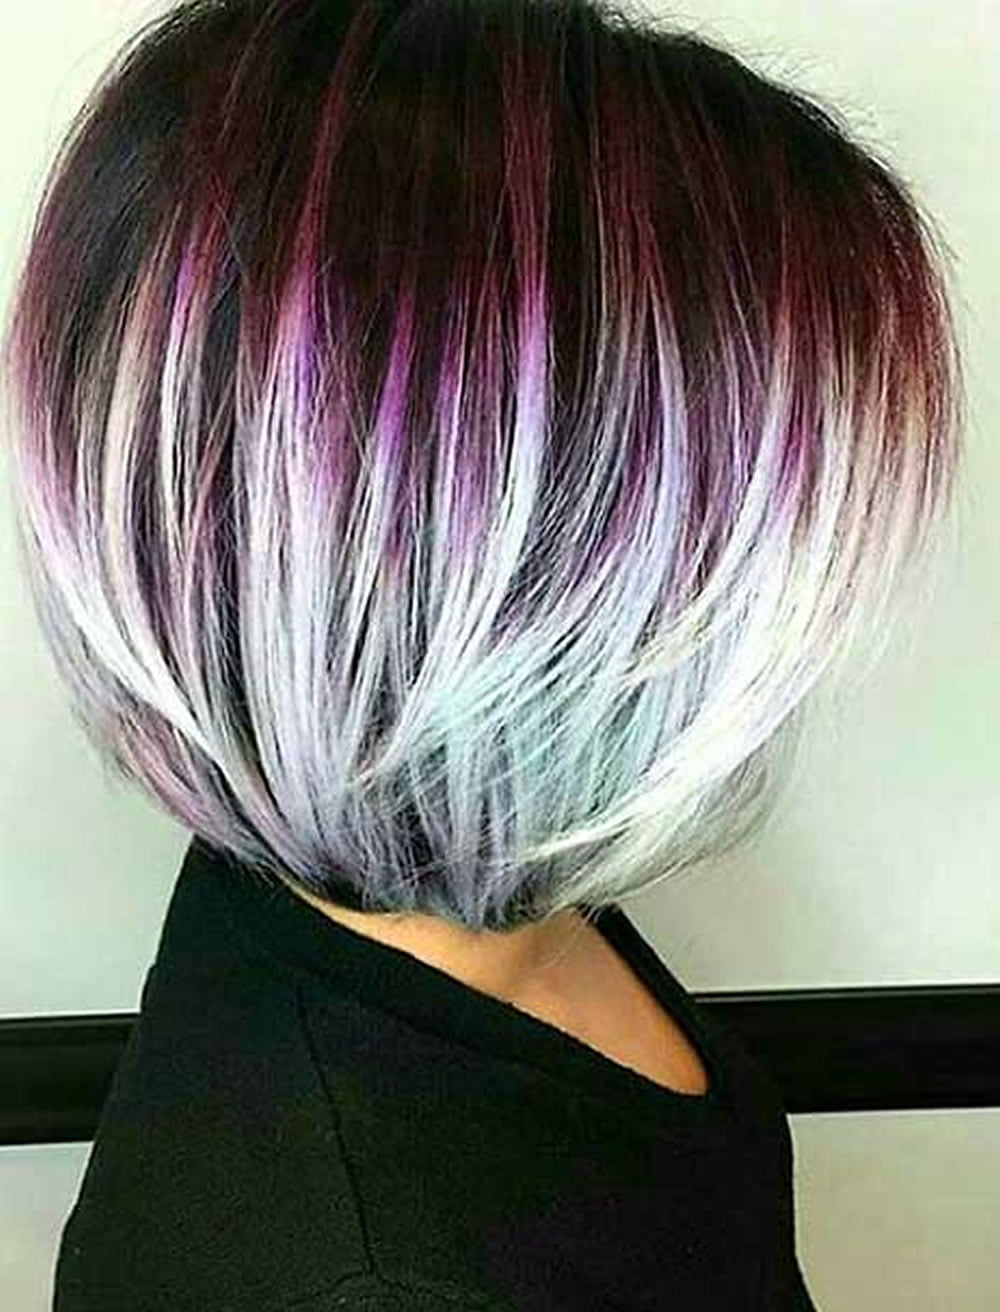 short hair colors and styles 50 the coolest hairstyles and hair colors for 7709 | Short Hairstyles and Hair Colors for Women 2018 2019 17